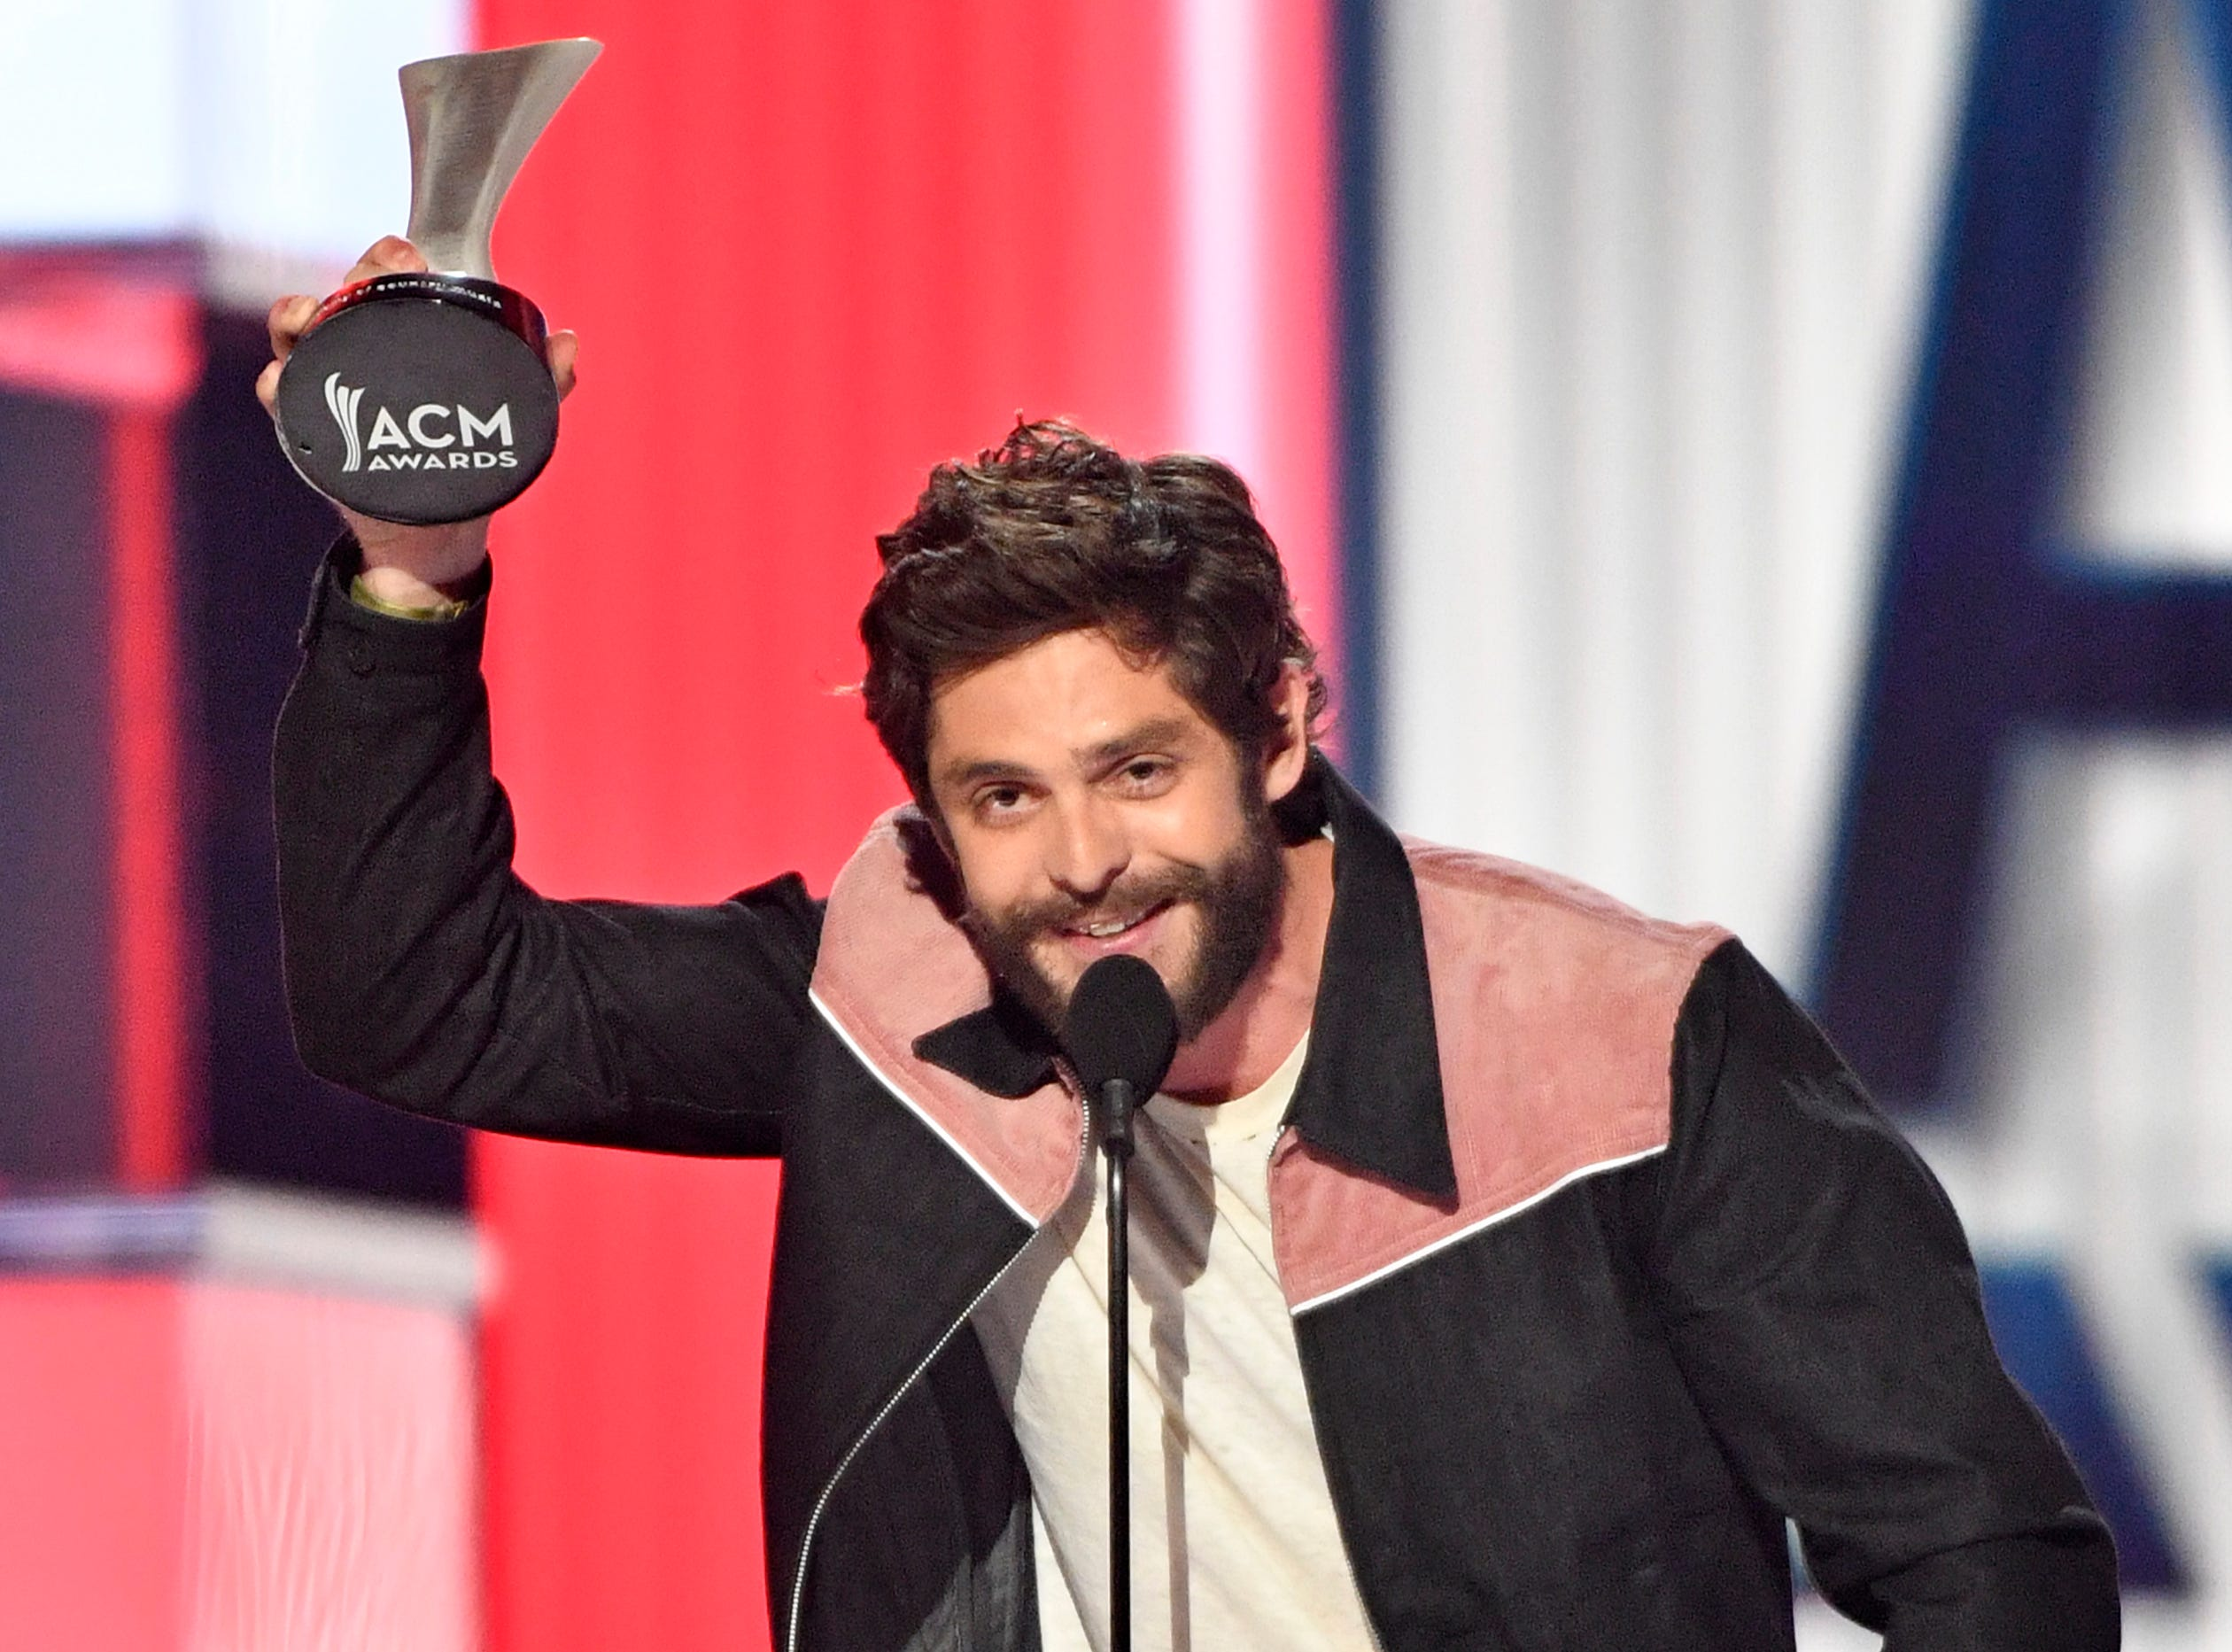 Thomas Rhett accepts the award for best Male Artist of the Year award during the 54TH Academy of Country Music Awards Sunday, April 7, 2019, in Las Vegas, Nev.